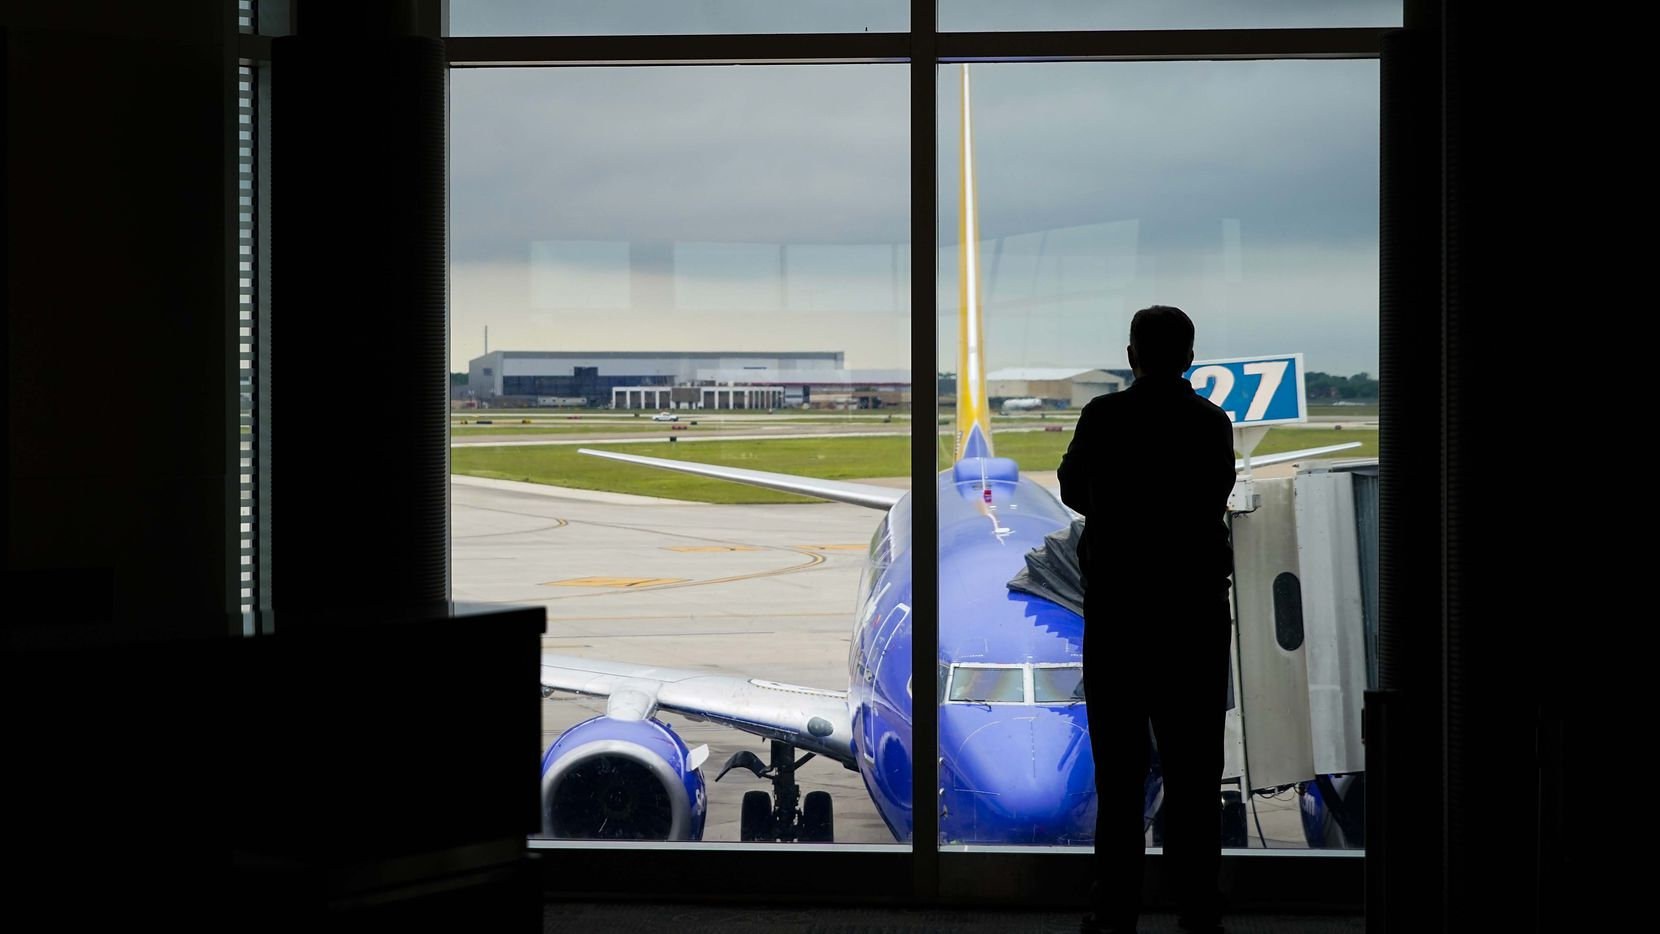 A man looks out over a Southwest Airlines 737 parked at a gate at Houston Hobby Airport.